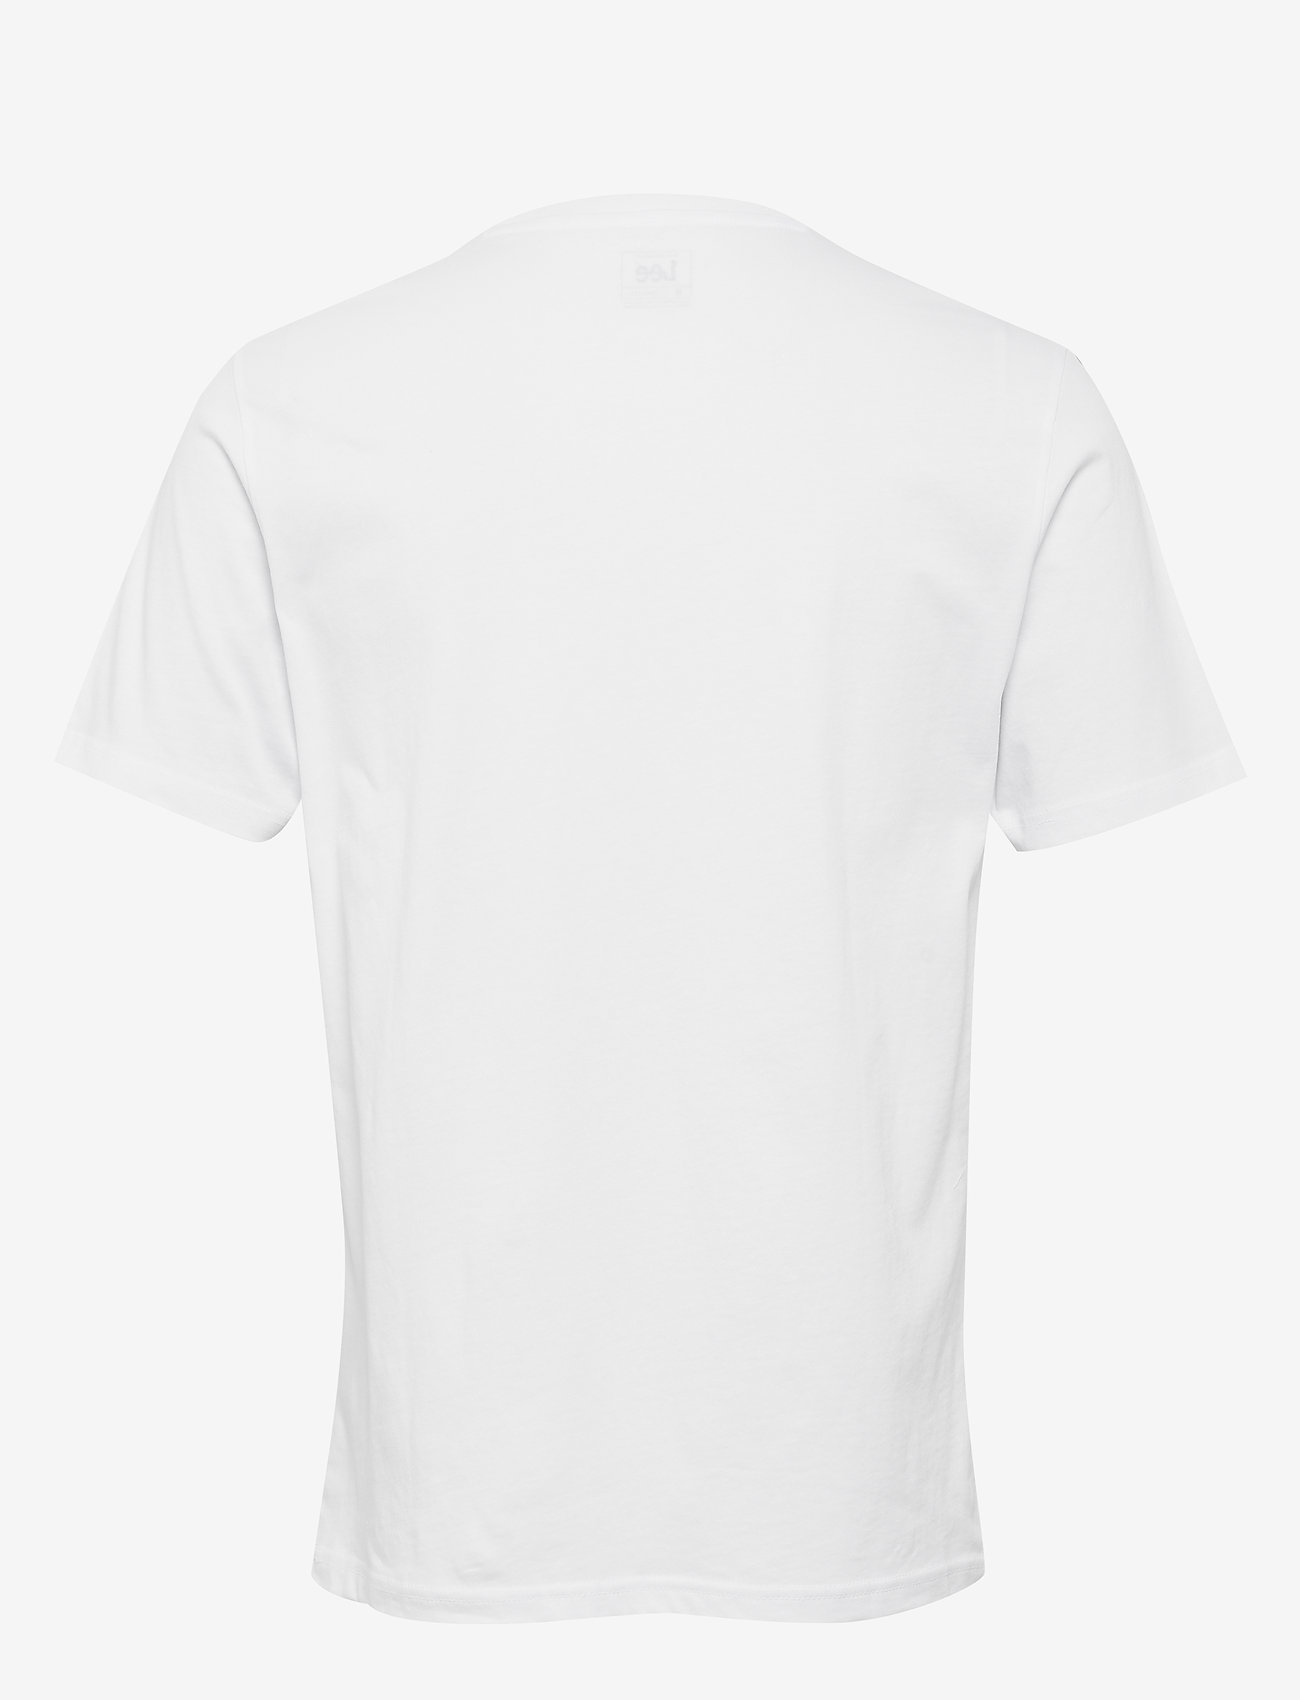 Lee Jeans - WOBBLY LOGO TEE - short-sleeved t-shirts - white - 1